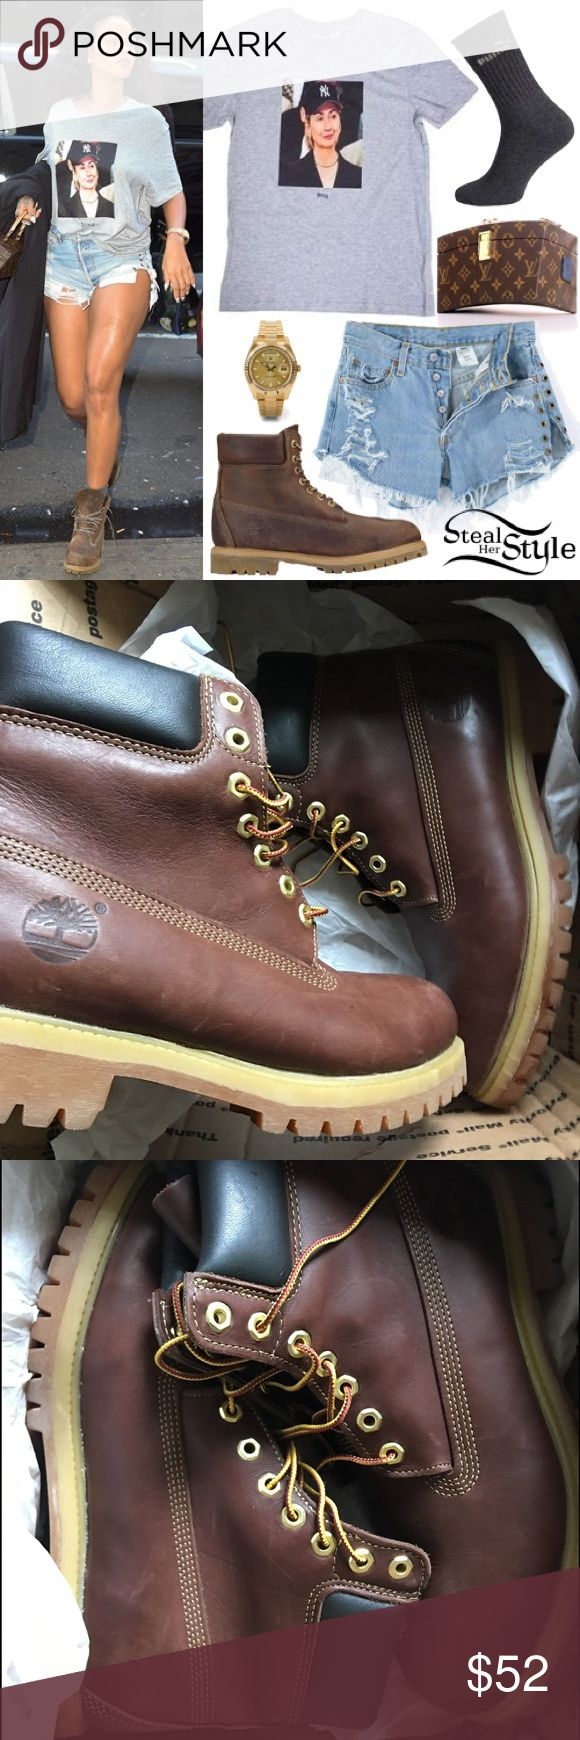 Brown 6in Timberland boots size 10 women's Just got from another Posher & I like the low cut timbs better. Excellent shape. Looks barely used. Price firm. I ship between Tues & Thursday, on my days off of work. Timberland Shoes